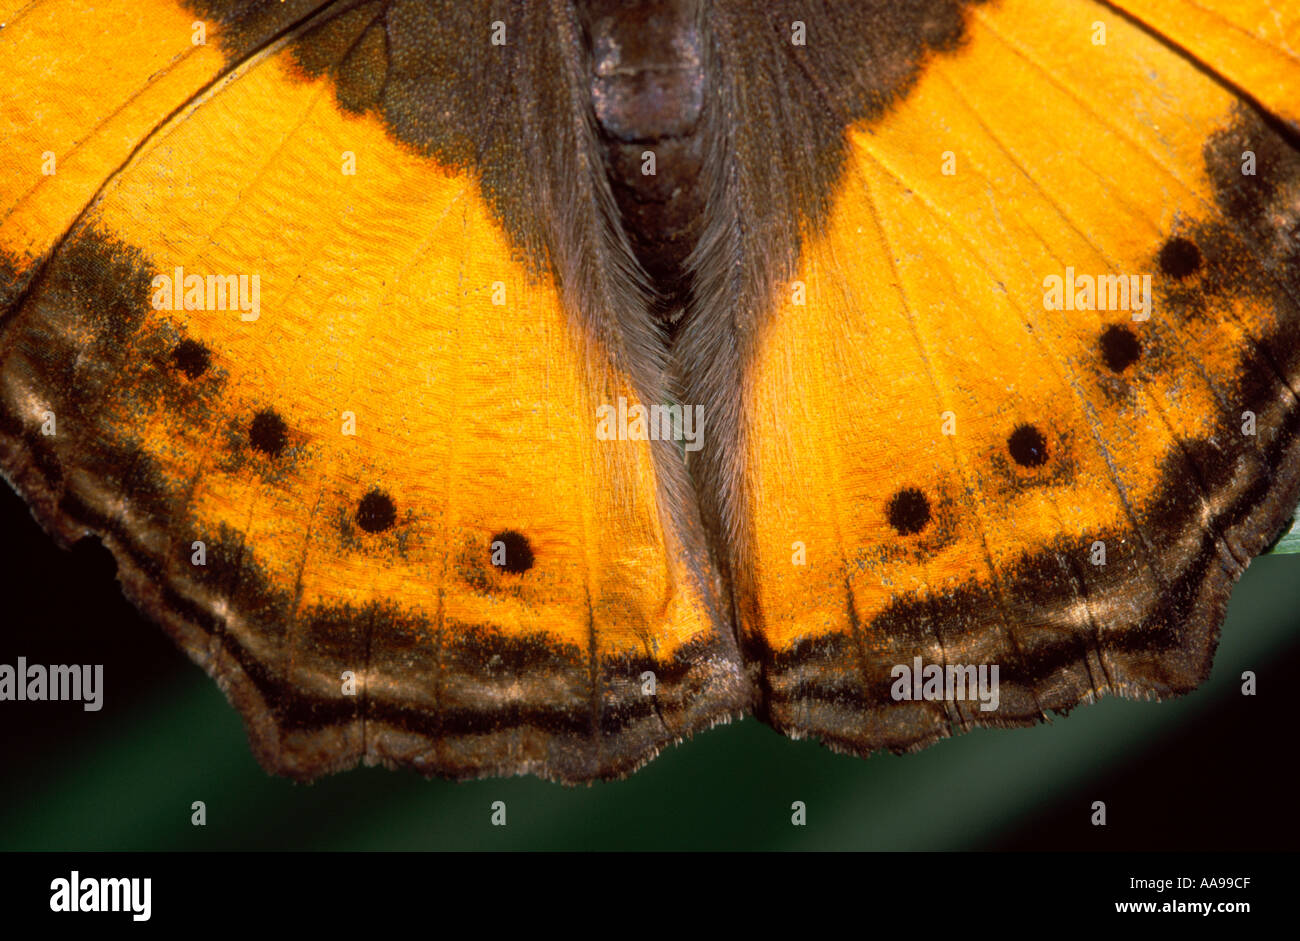 Australian lurcher butterfly (Yoma sabina) hindwings. Melbourne Zoo, butterfly house. - Stock Image